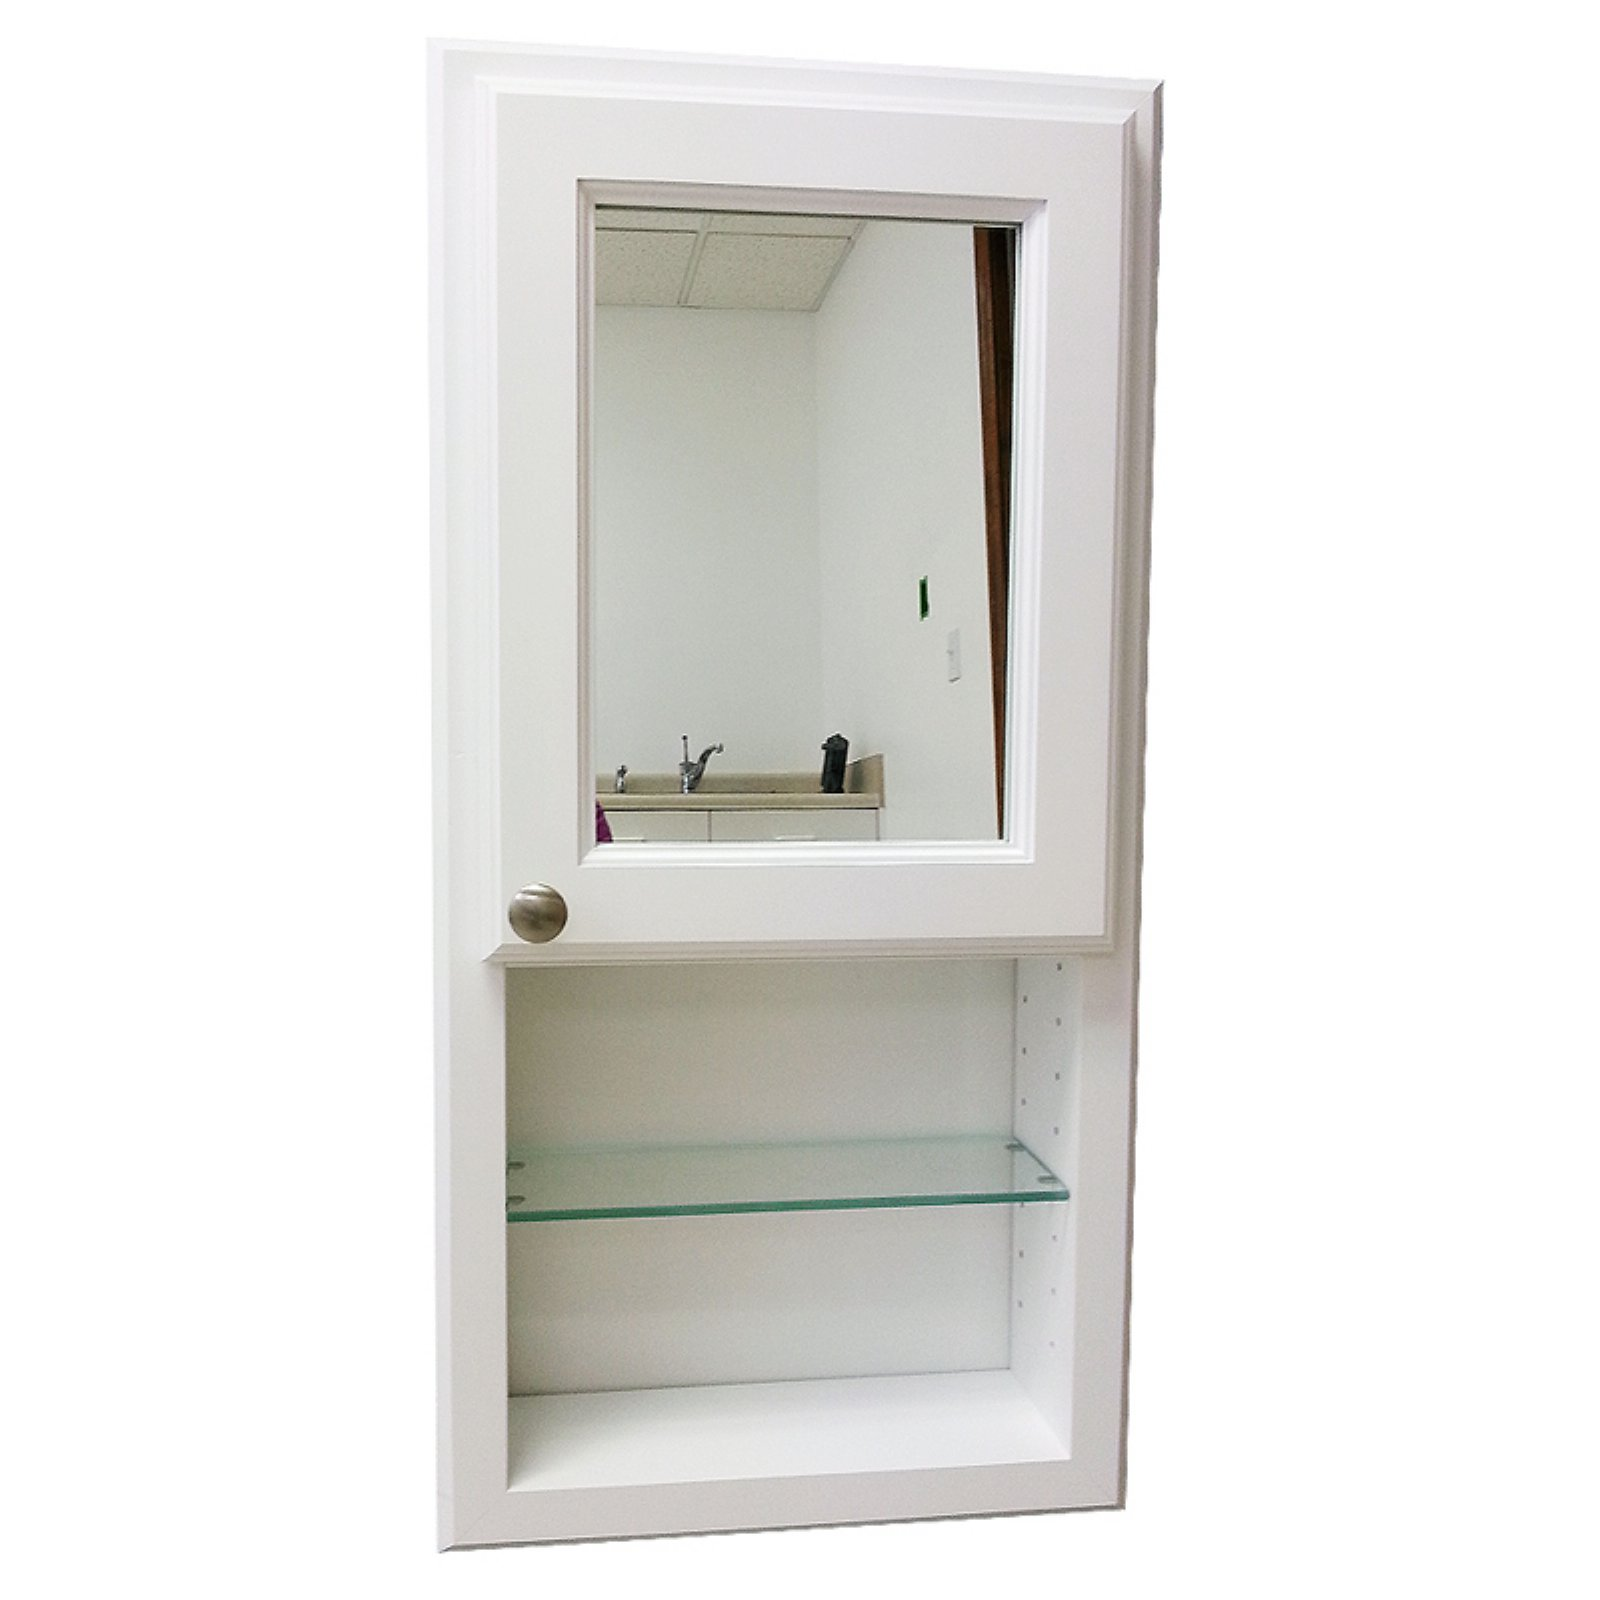 WG Wood Nash 15.5W x 37.5H in. Surface Mount Medicine Cabinet with Mirror Door by